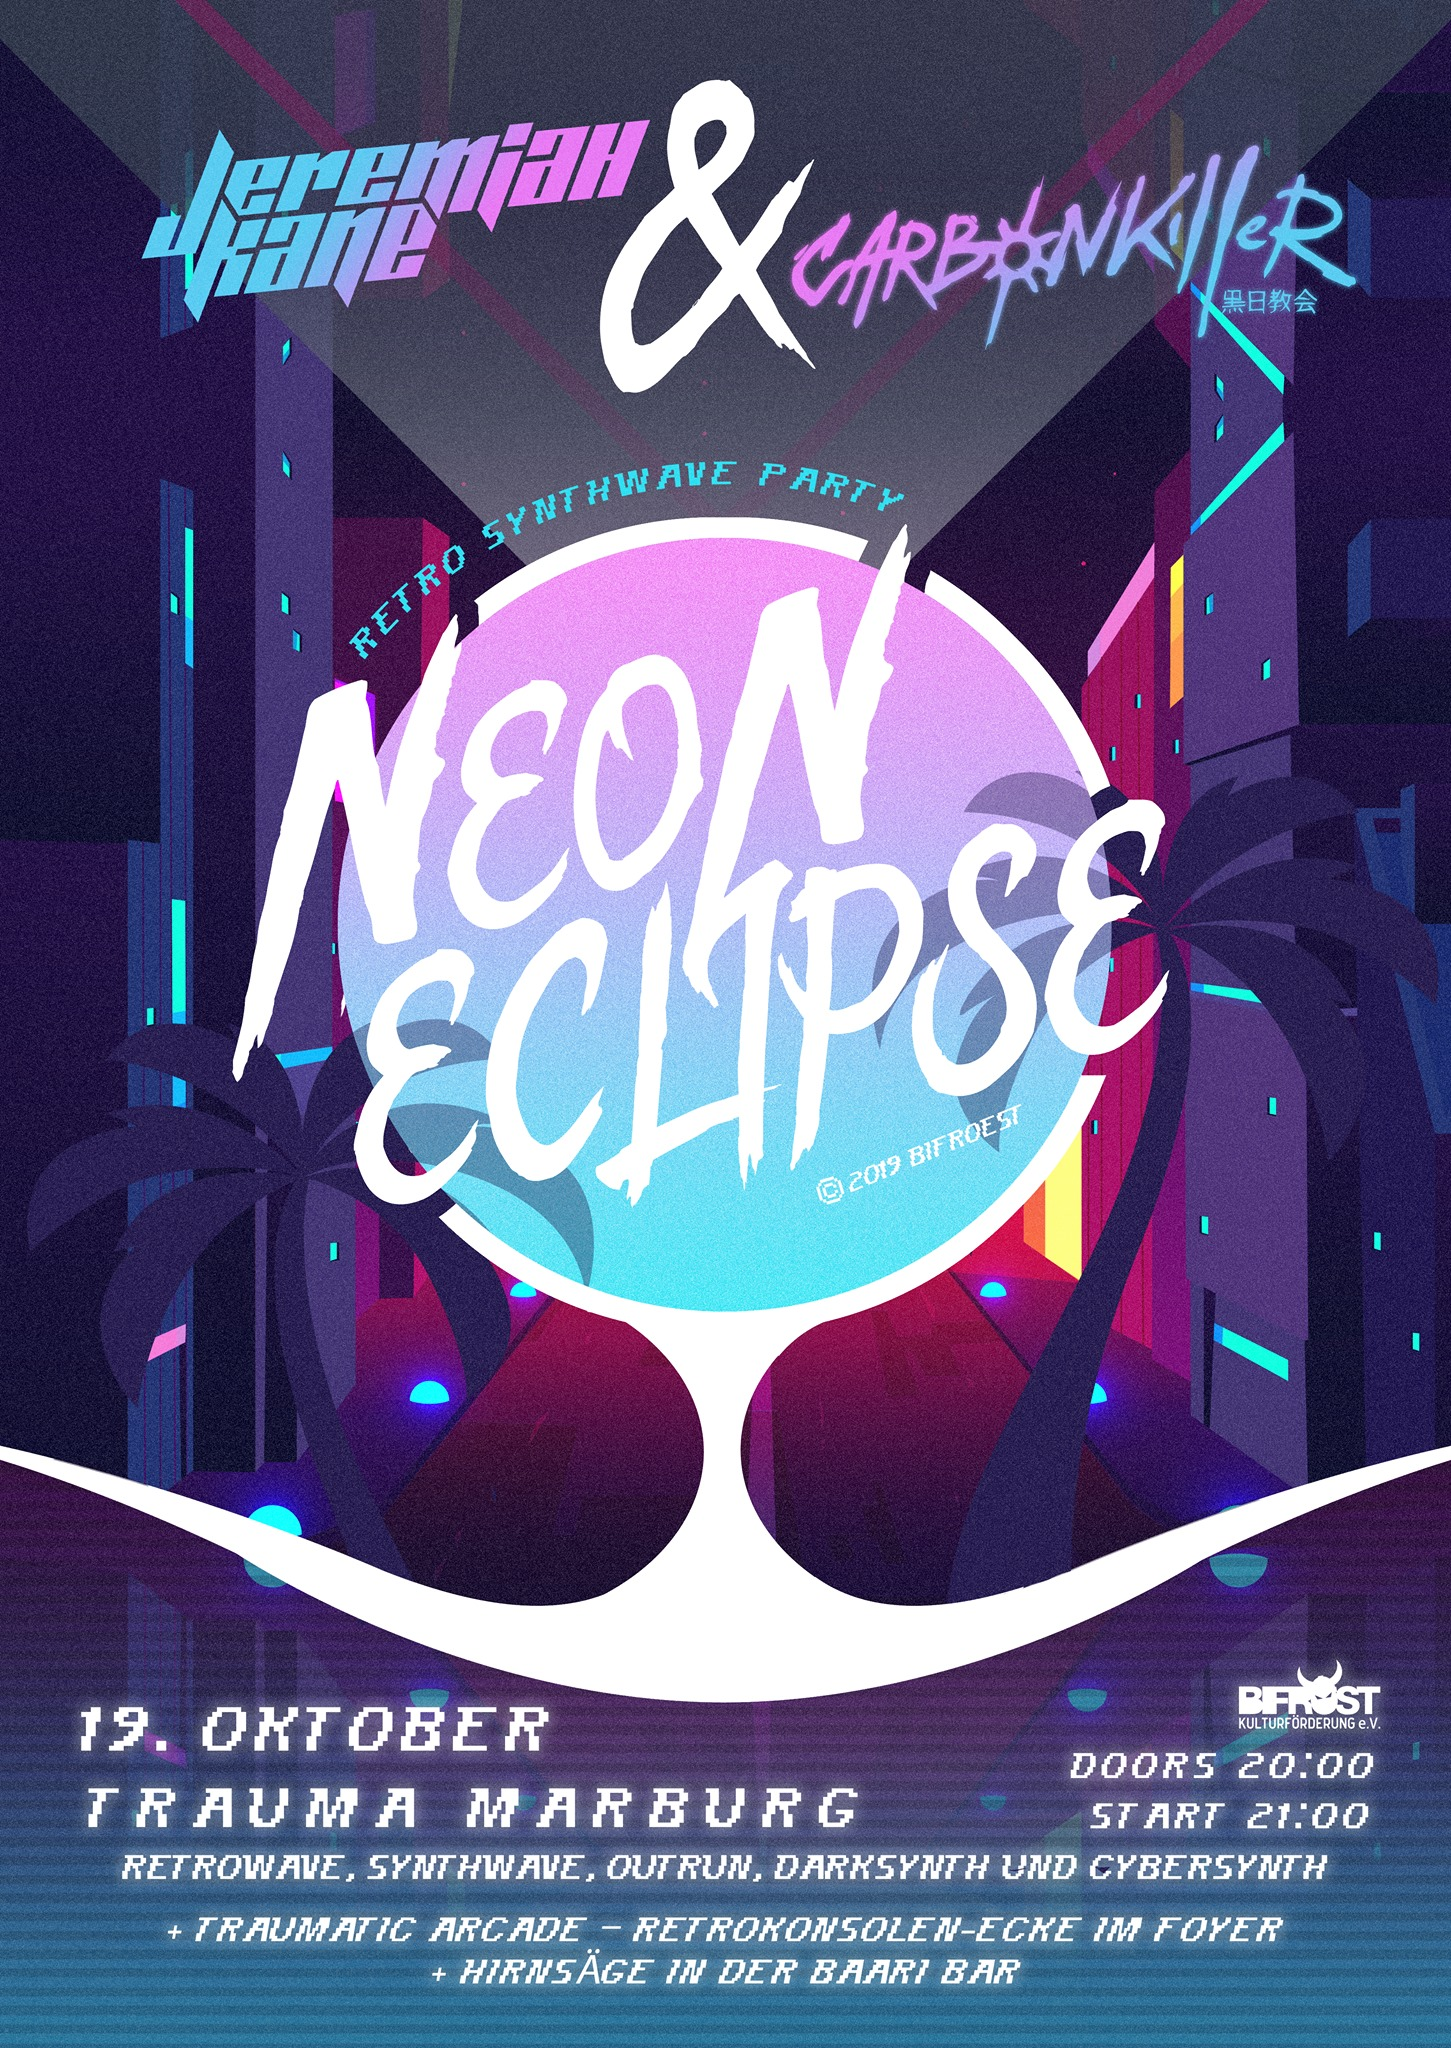 The Rise of the Neon Eclipse